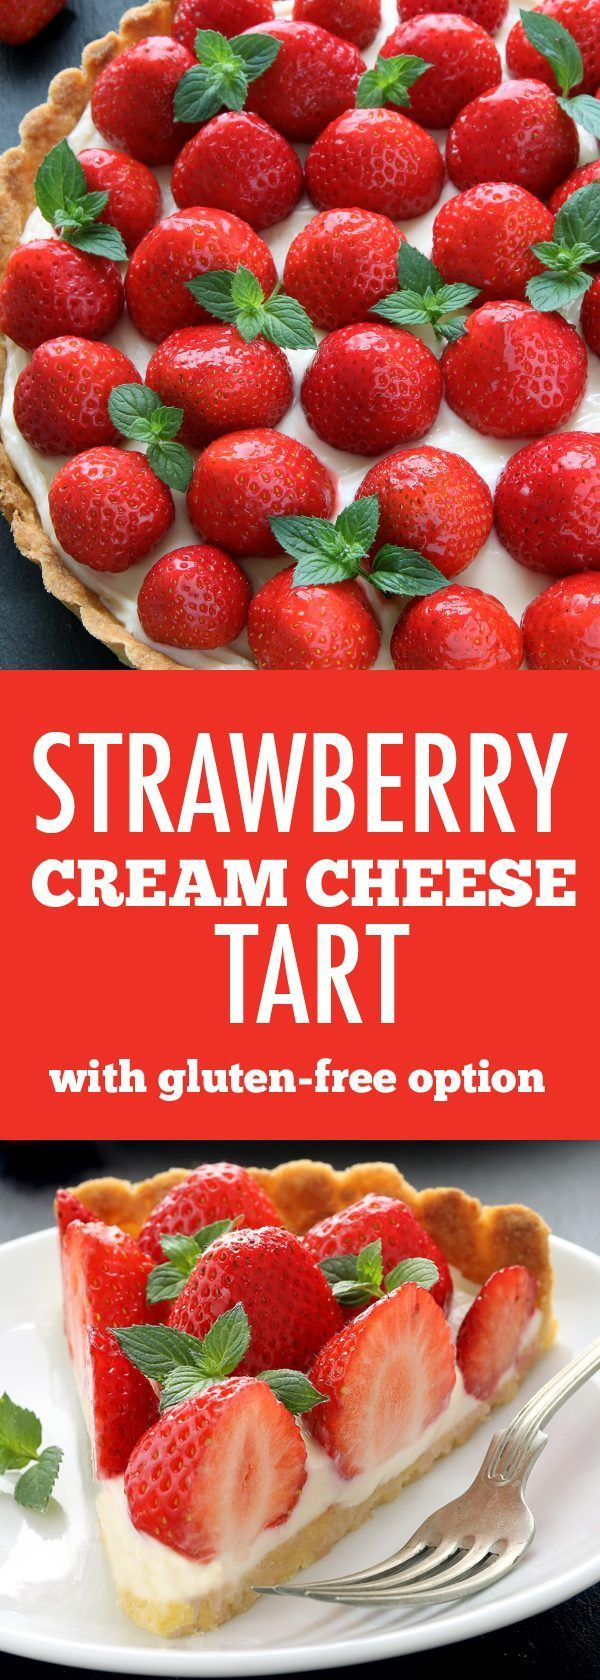 Strawberry Cream Cheese Tart is loaded with fresh summer berries and an irresistible layer of sweetened cream cheese. It's the perfect dessert for summer. Recipe contains a gluten-free option.